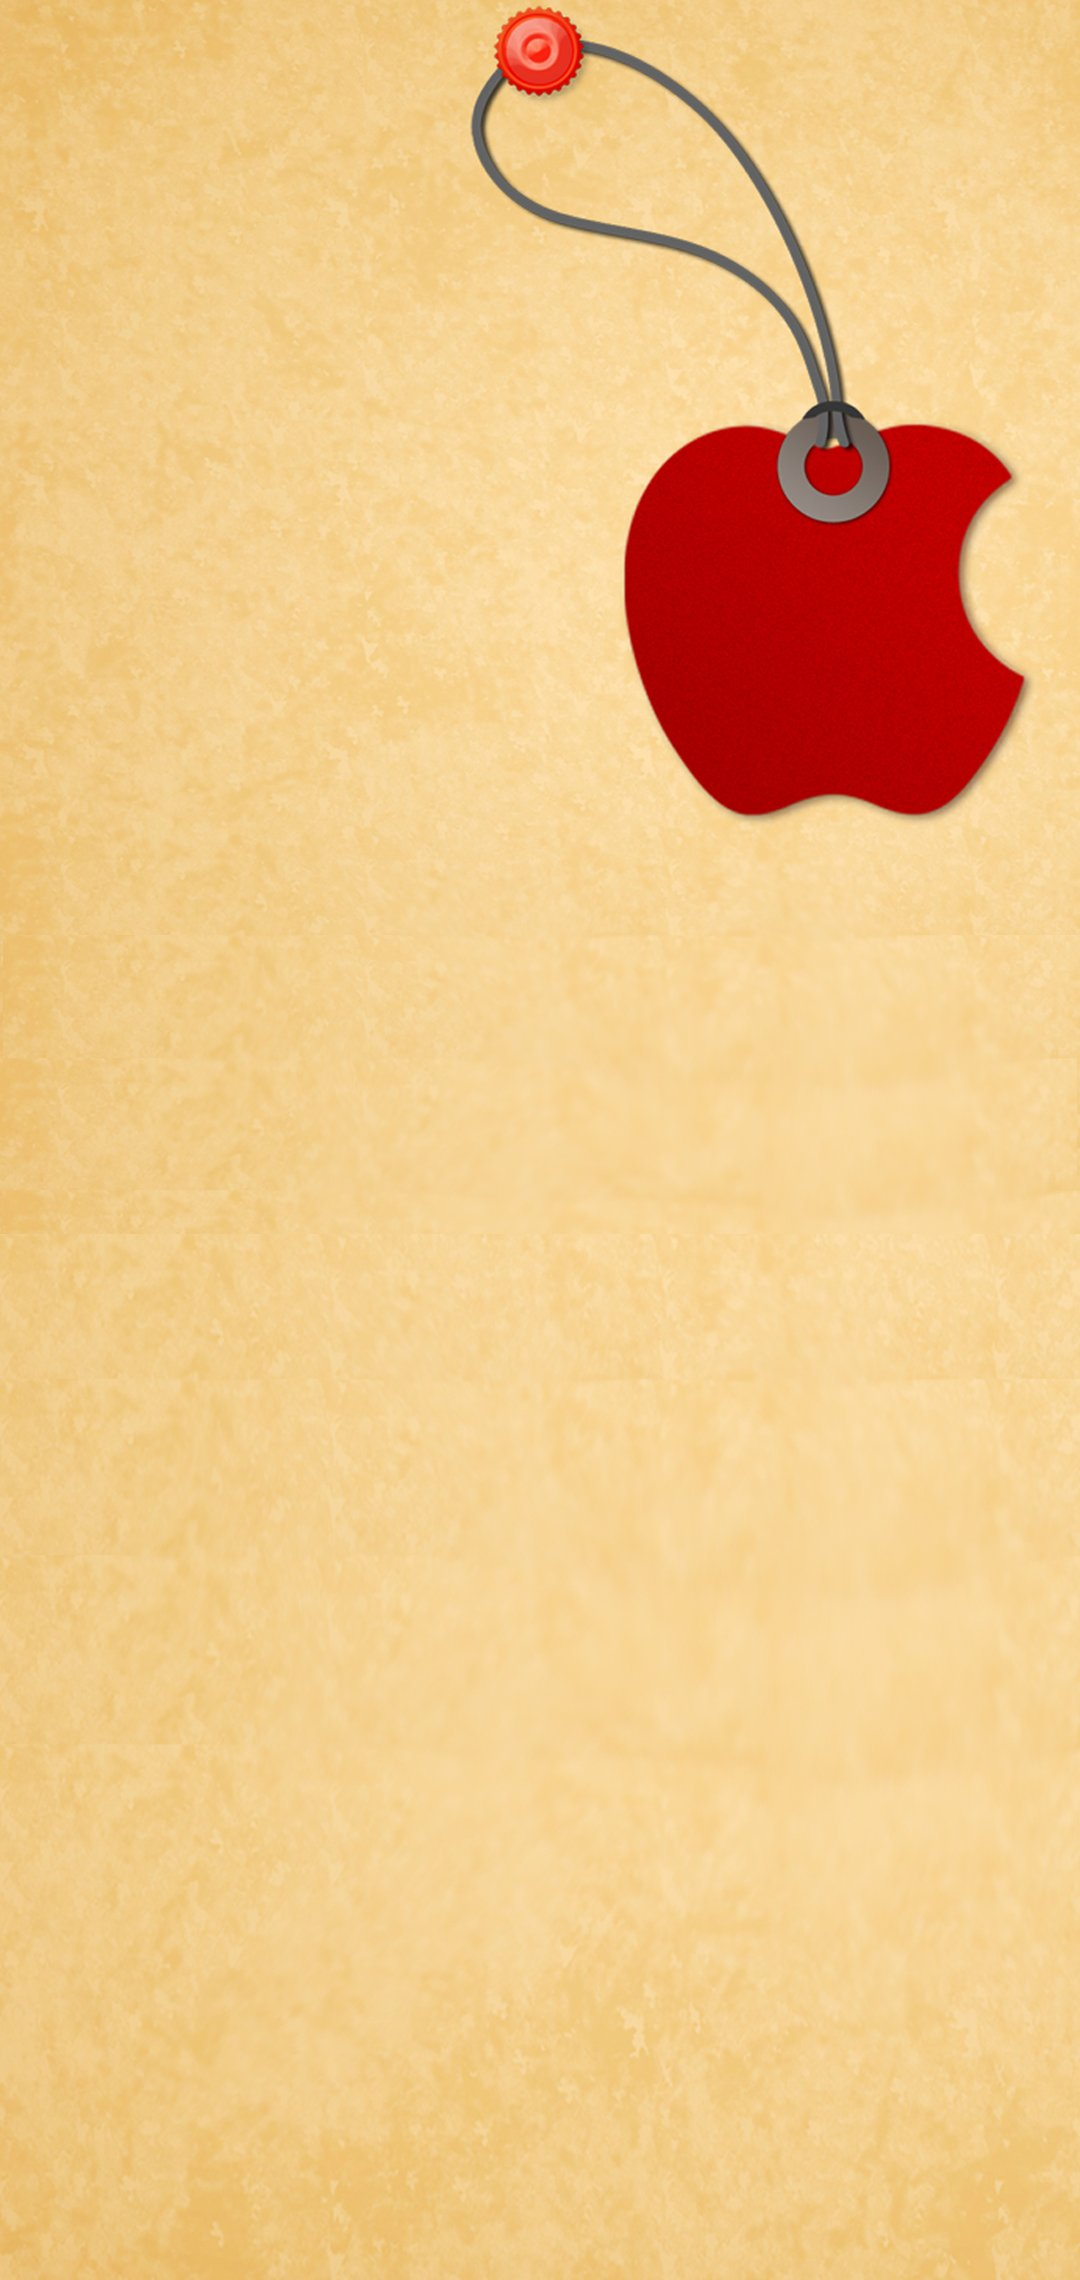 apple logo hole-punch wallpaper